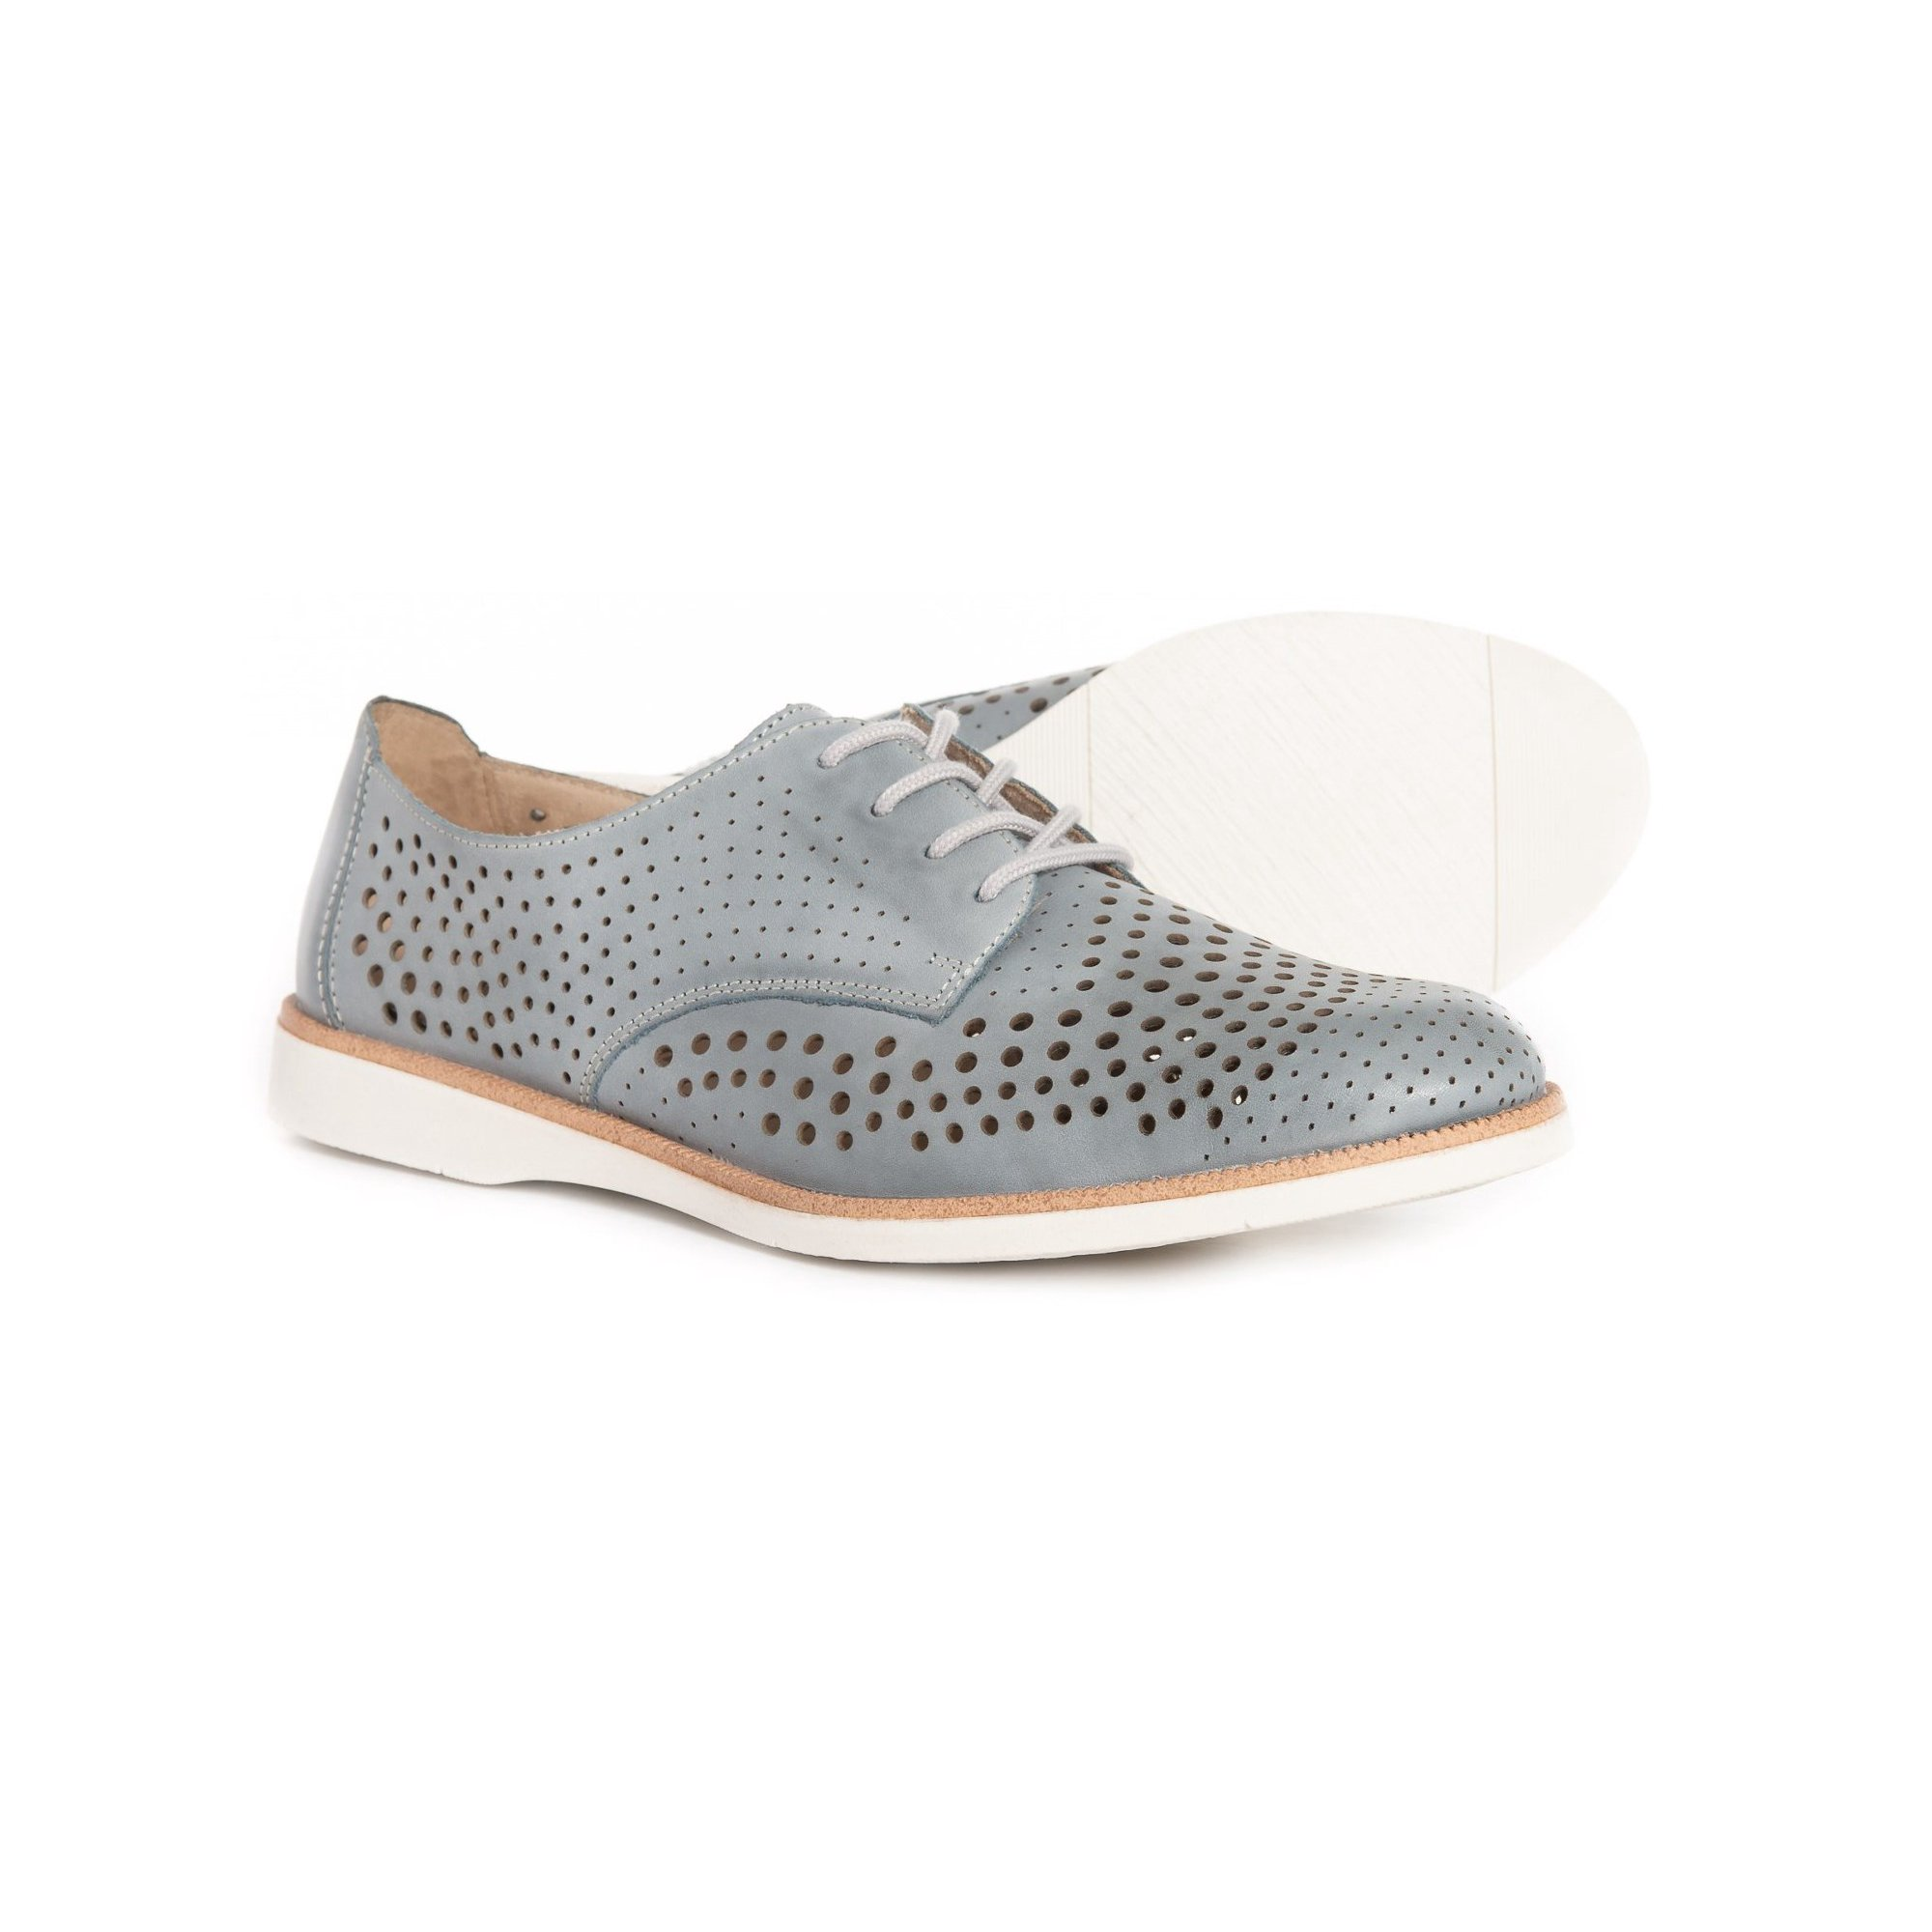 online retailer ffa13 e28e1 Remonte Womens Kennya03 Leather Closed Toe Oxfords